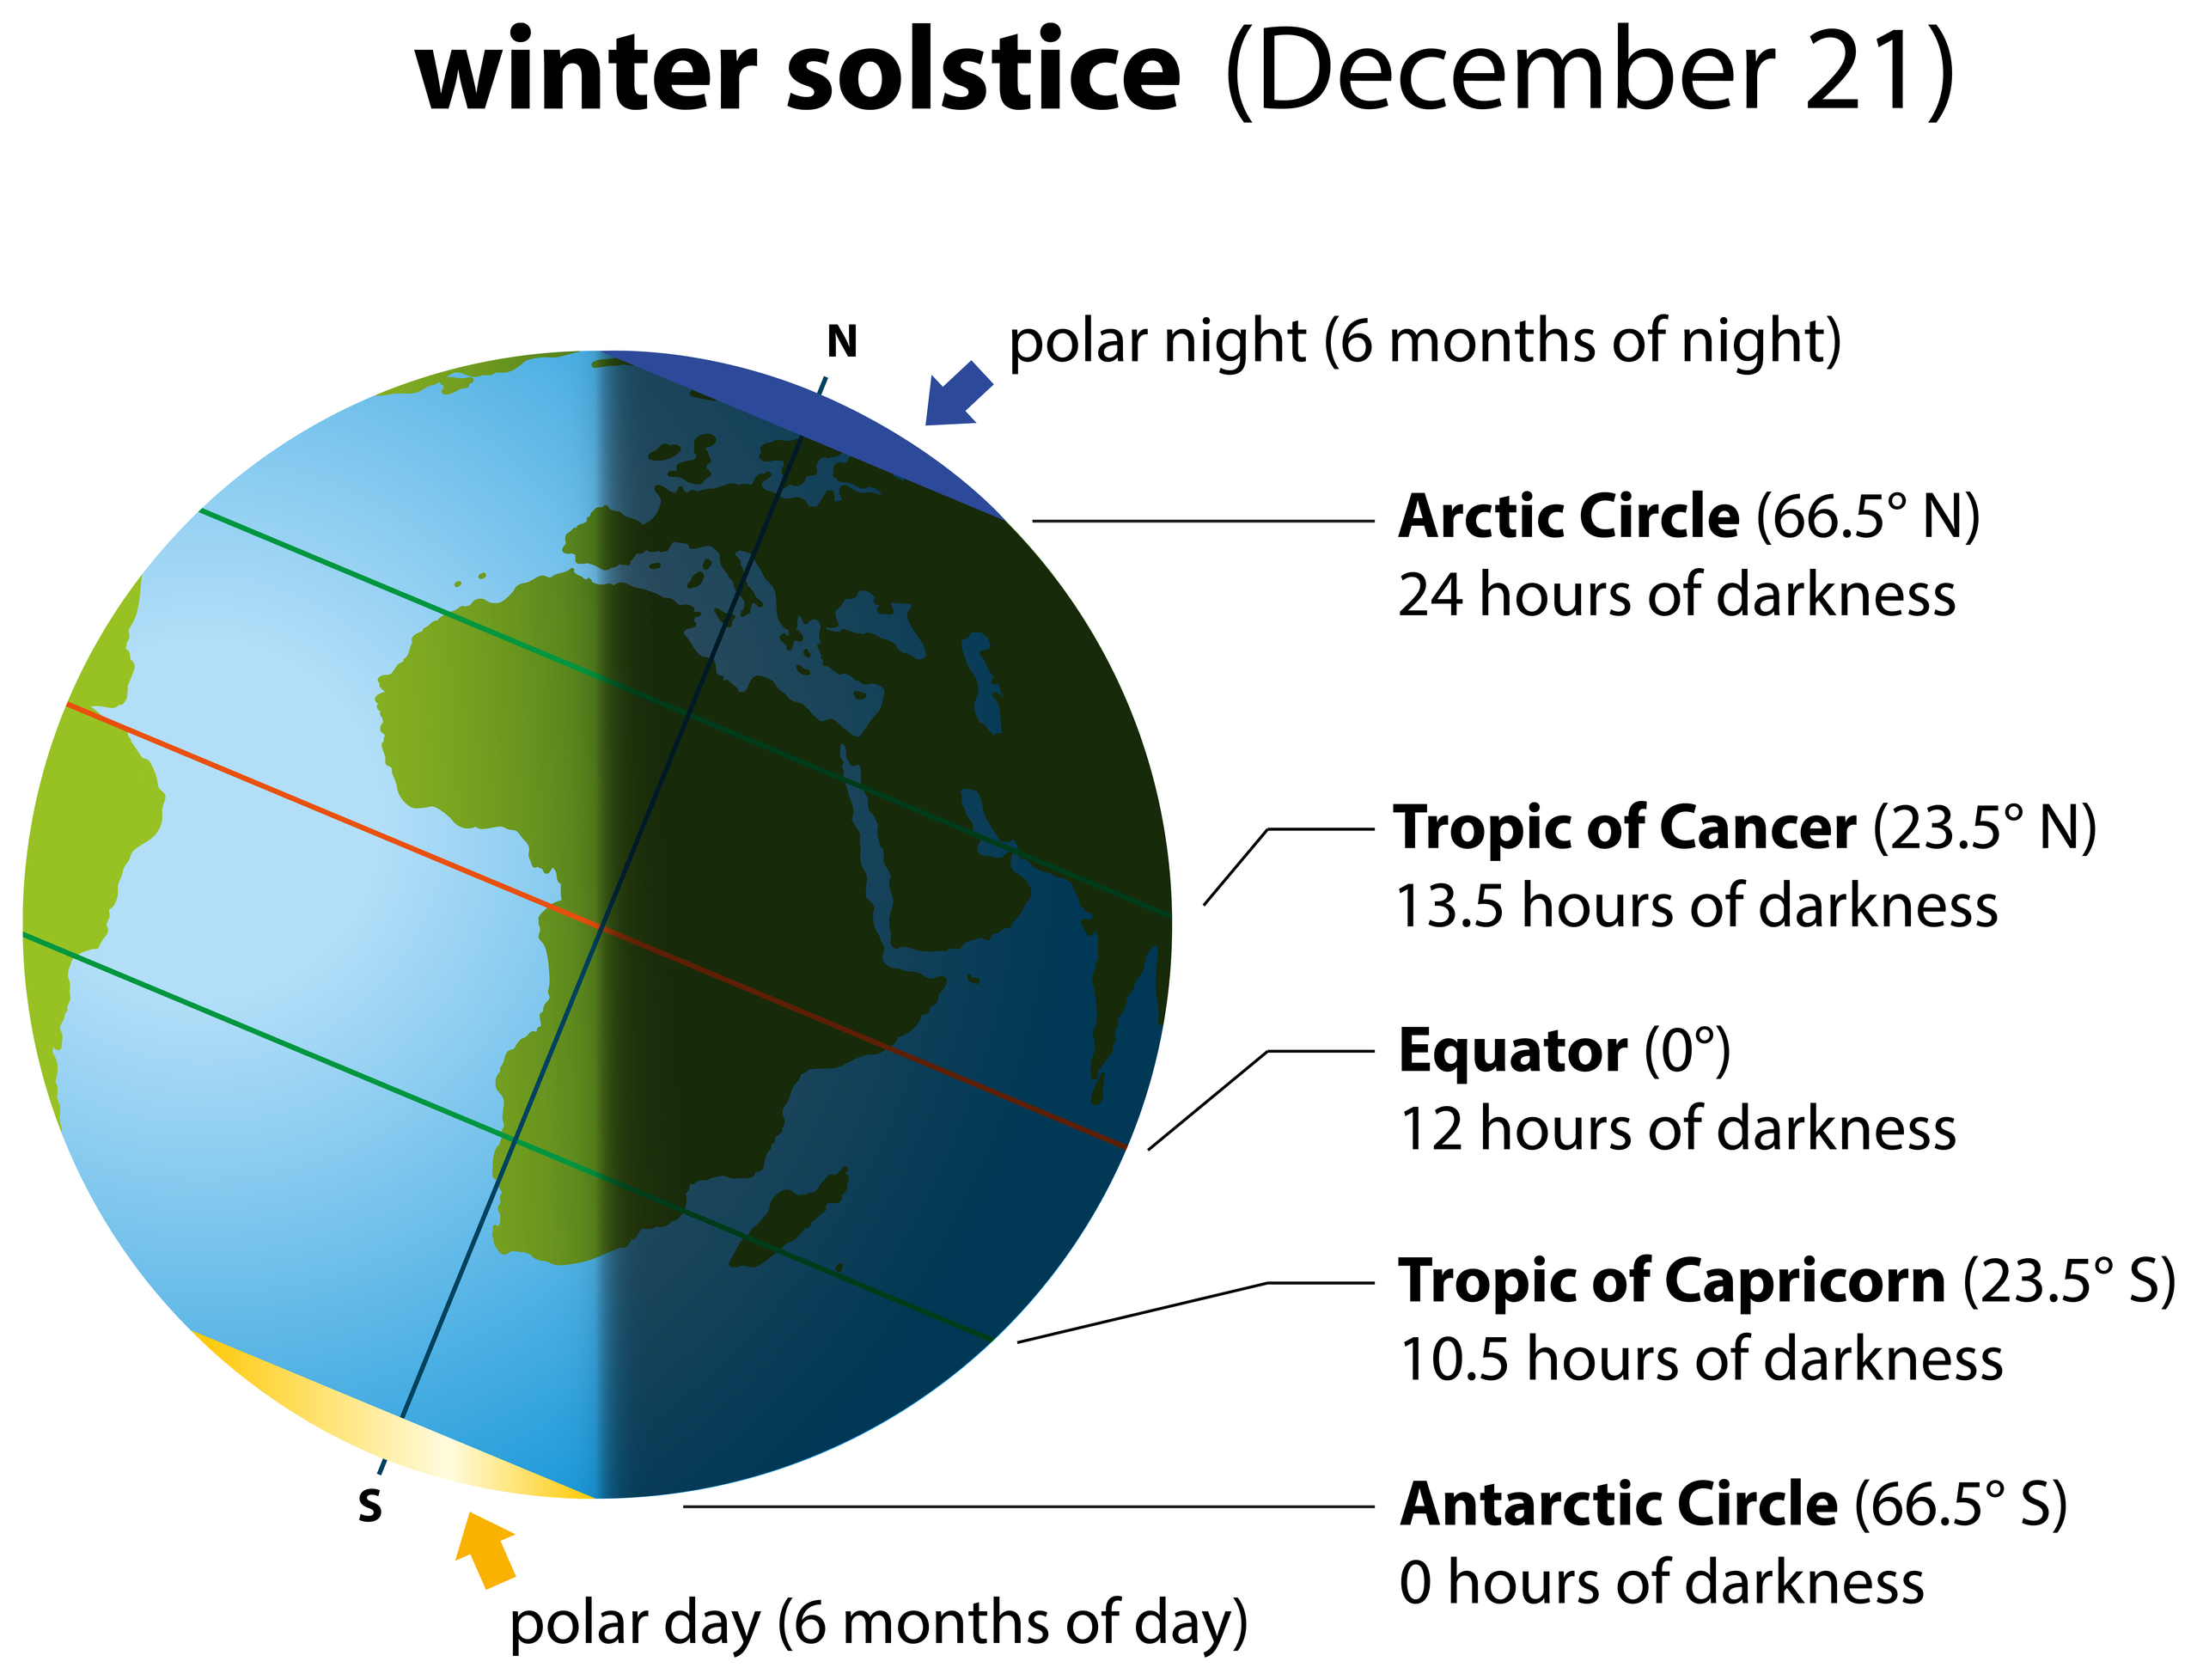 Happy Winters Solstice Dreamstimelarge_34471073